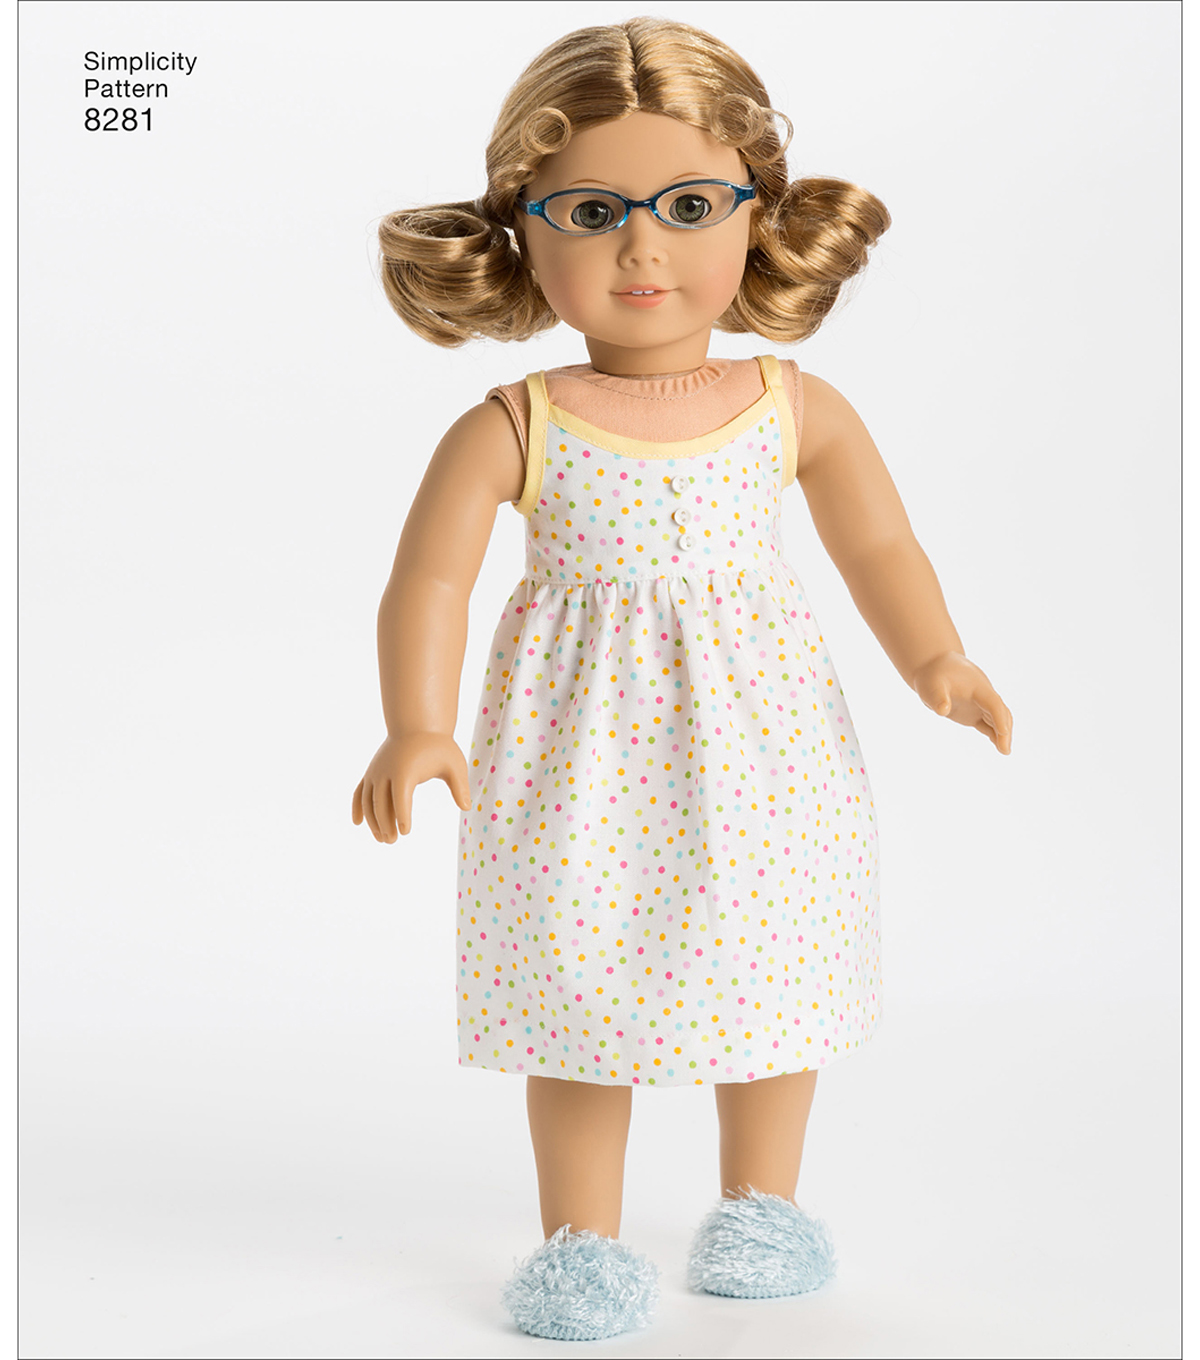 Simplicity Pattern 8281 18 Doll American Girl Clothes Joann